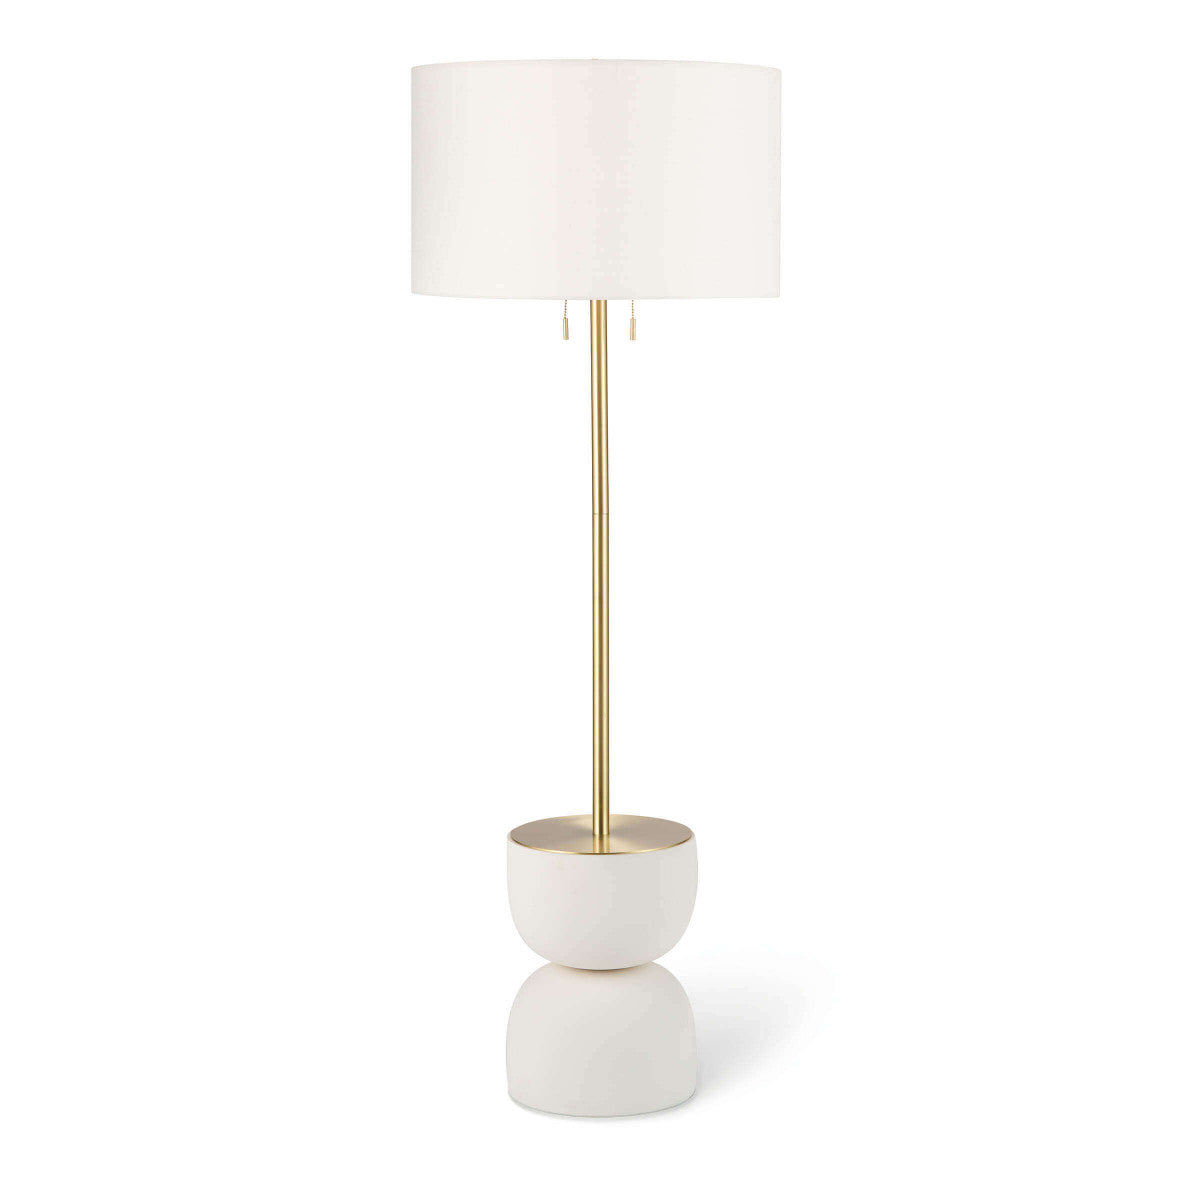 Santorini Floor Lamp